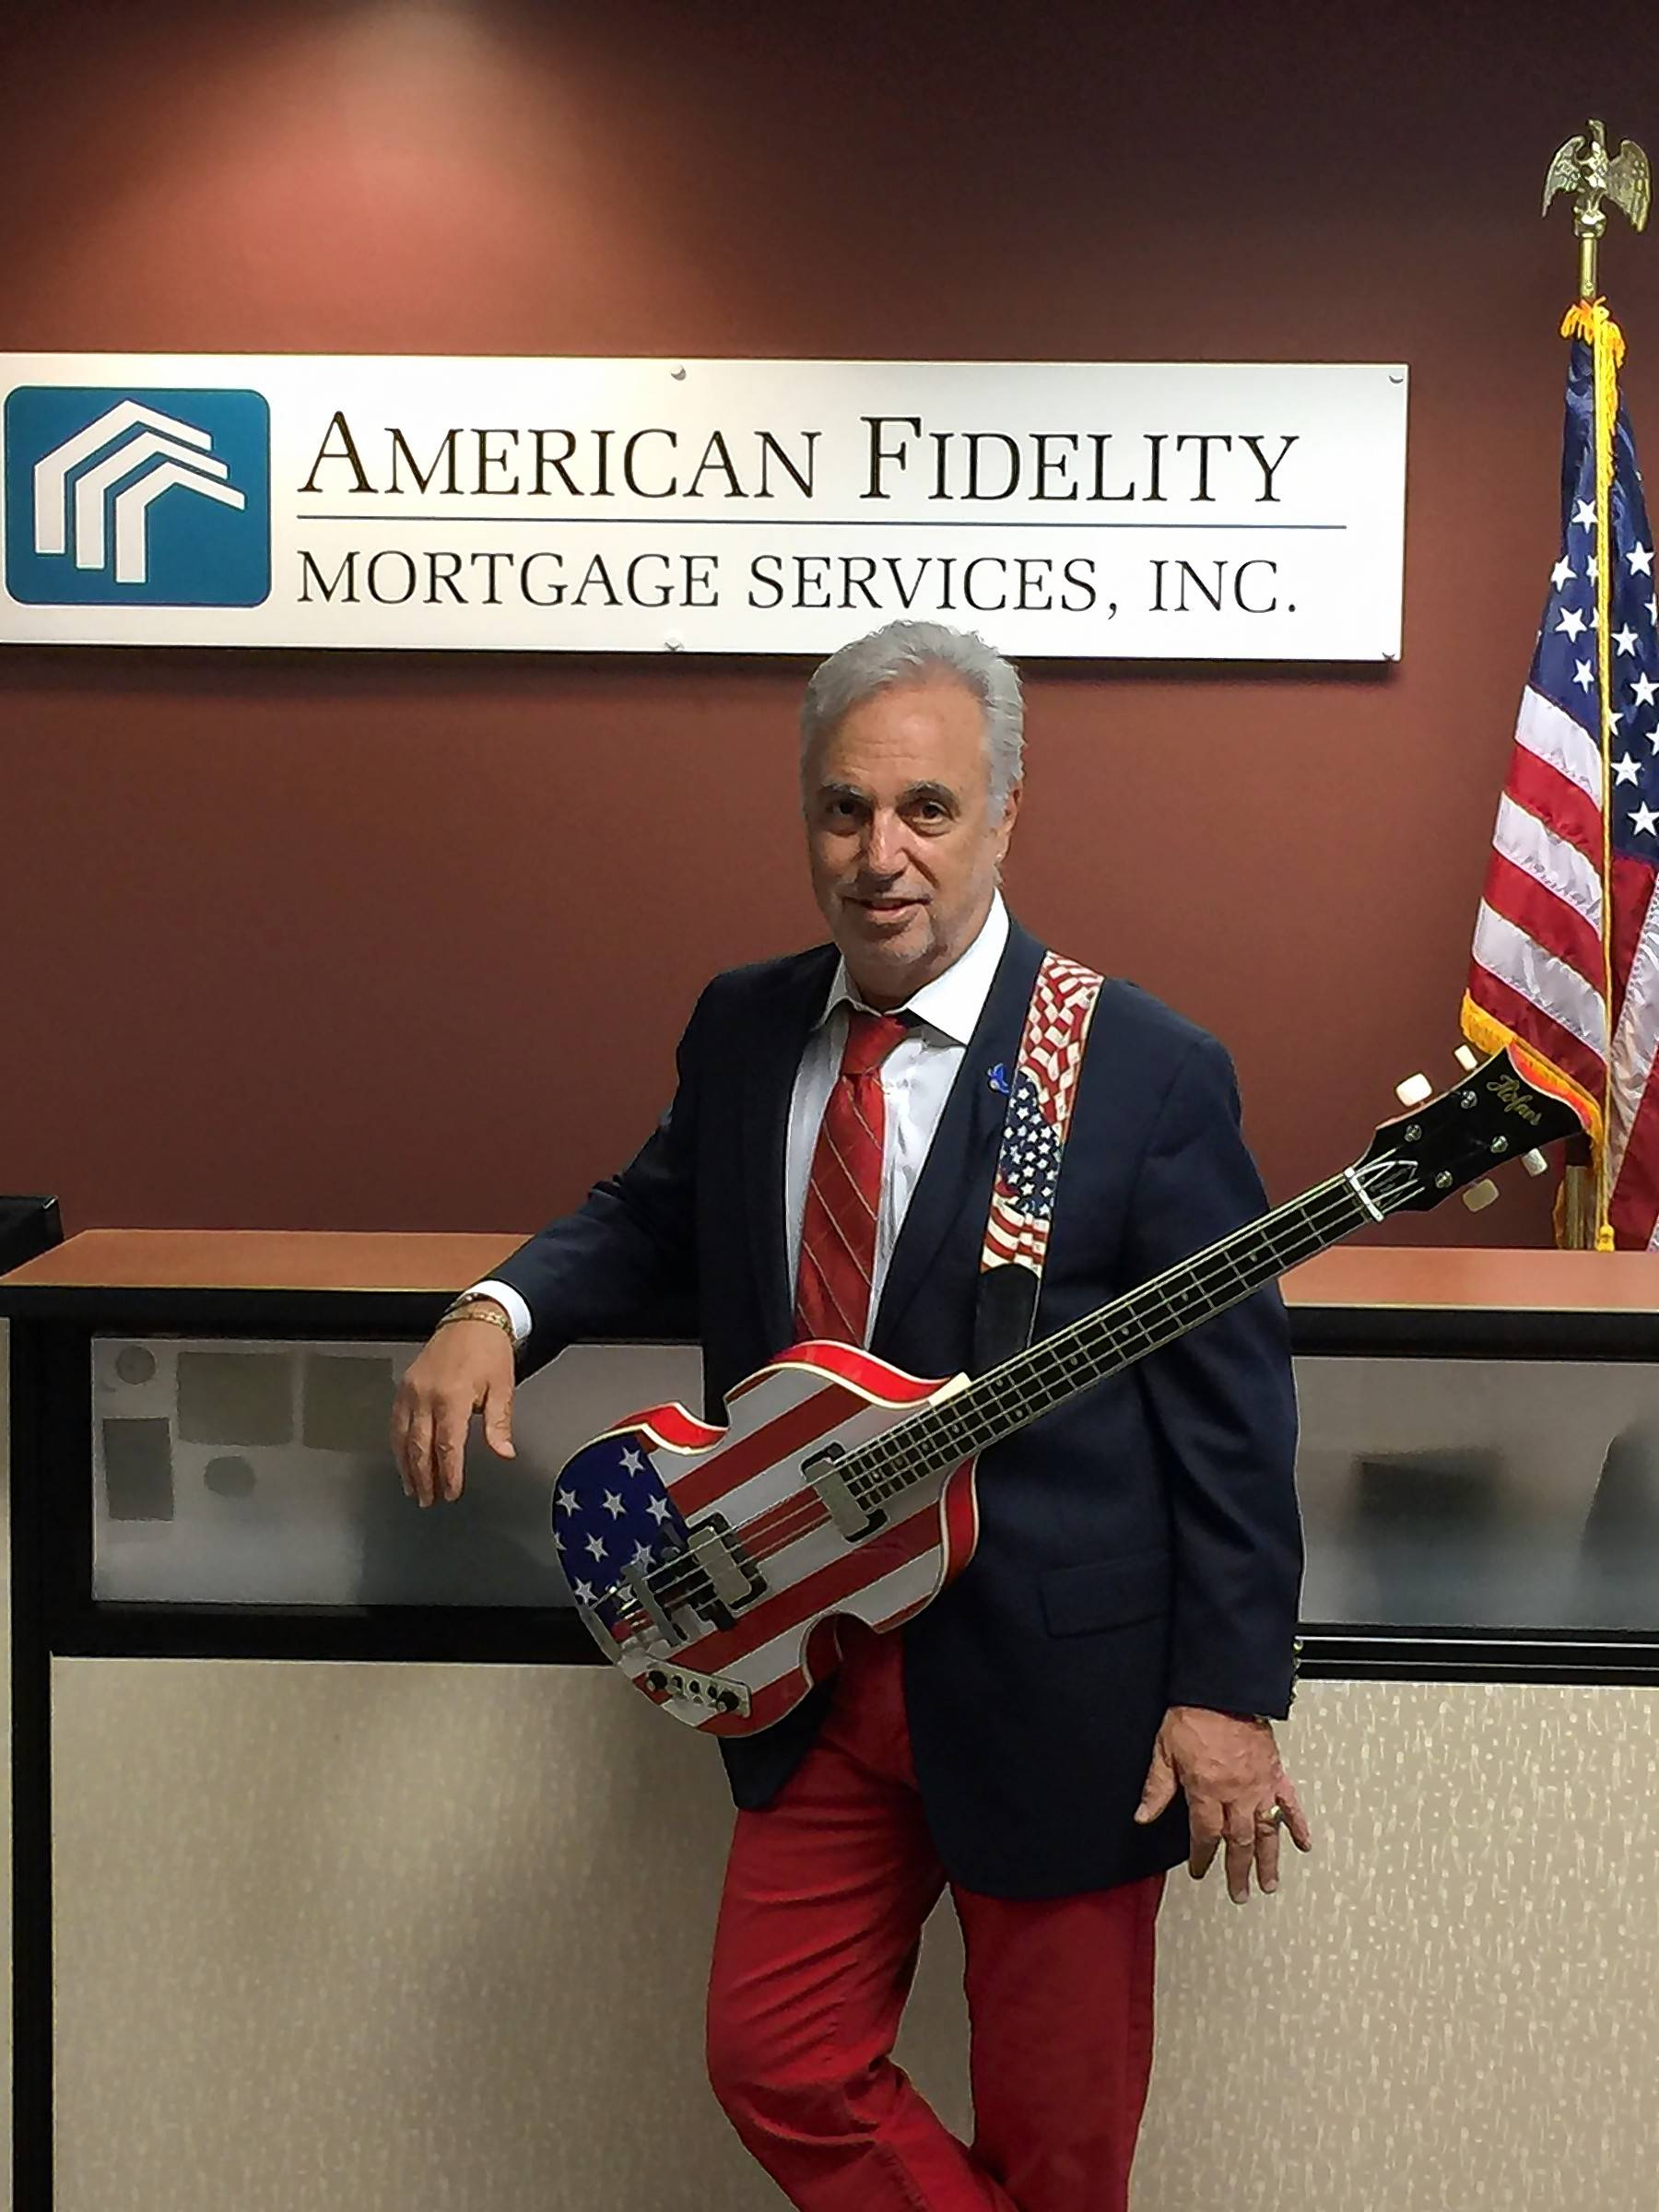 Joe Cuttone, president of American Fidelity Mortgage, played bass guitar in an earlier gig but has owned the mortgage company since 2006.